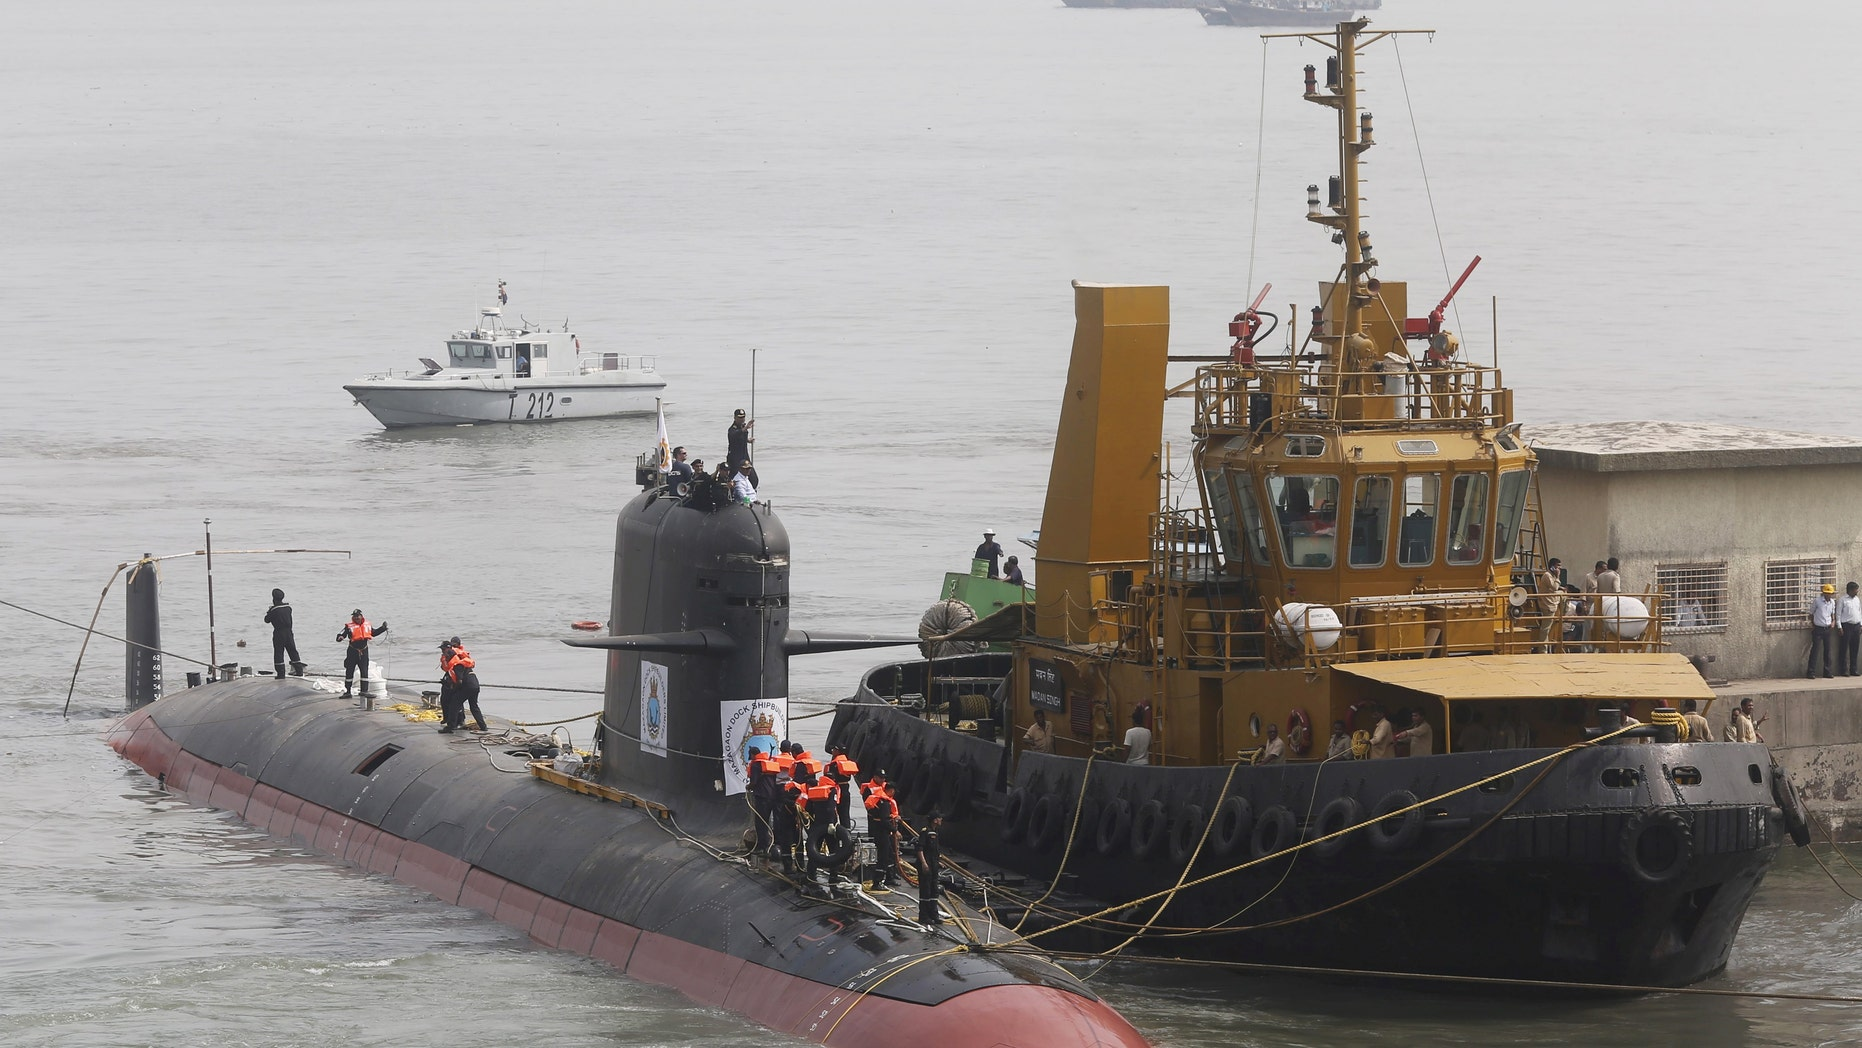 File photo of Indian Navy's Scorpene submarine INS Kalvari being escorted by tugboats as it arrives at Mazagon Docks Ltd, a naval vessel ship building yard, in Mumbai, India, Oct. 29, 2015. (REUTERS/Shailesh Andrade/Files)